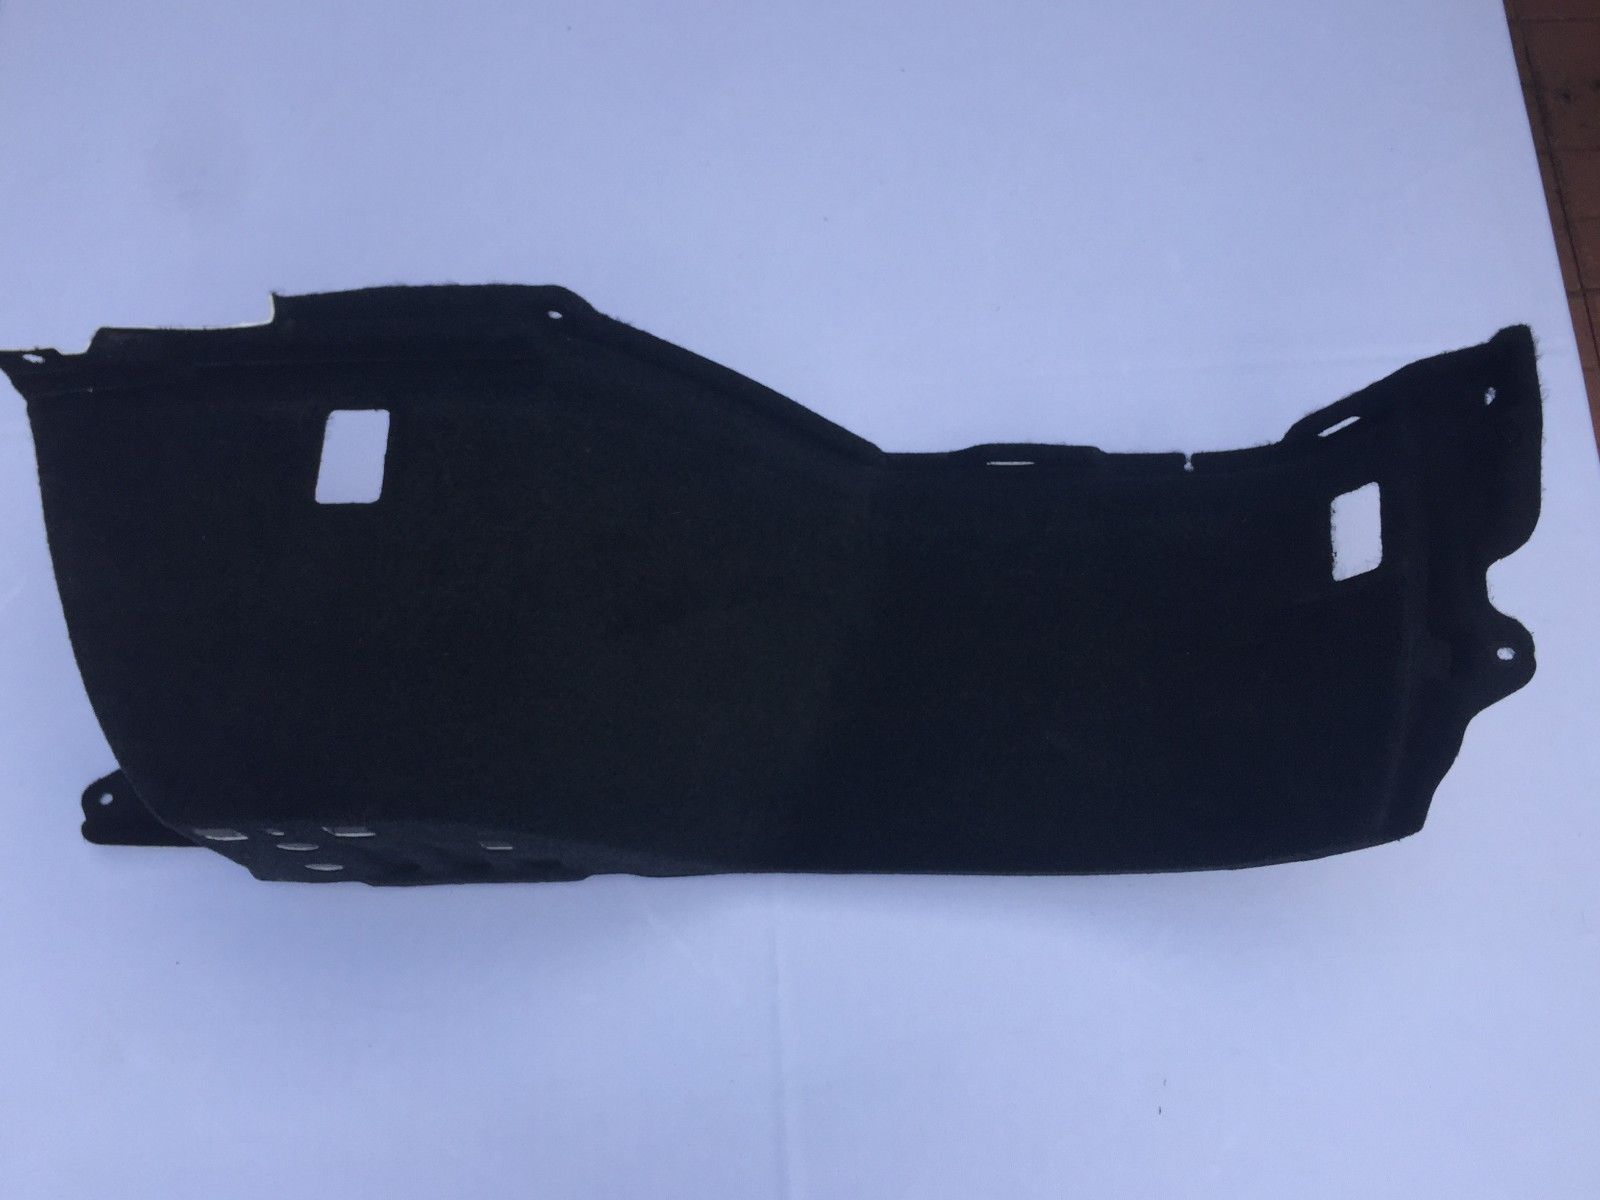 2005 LEXUS RX330 REAR LEFT DRIVER SIDE TRUNK COVER TRIM PANEL